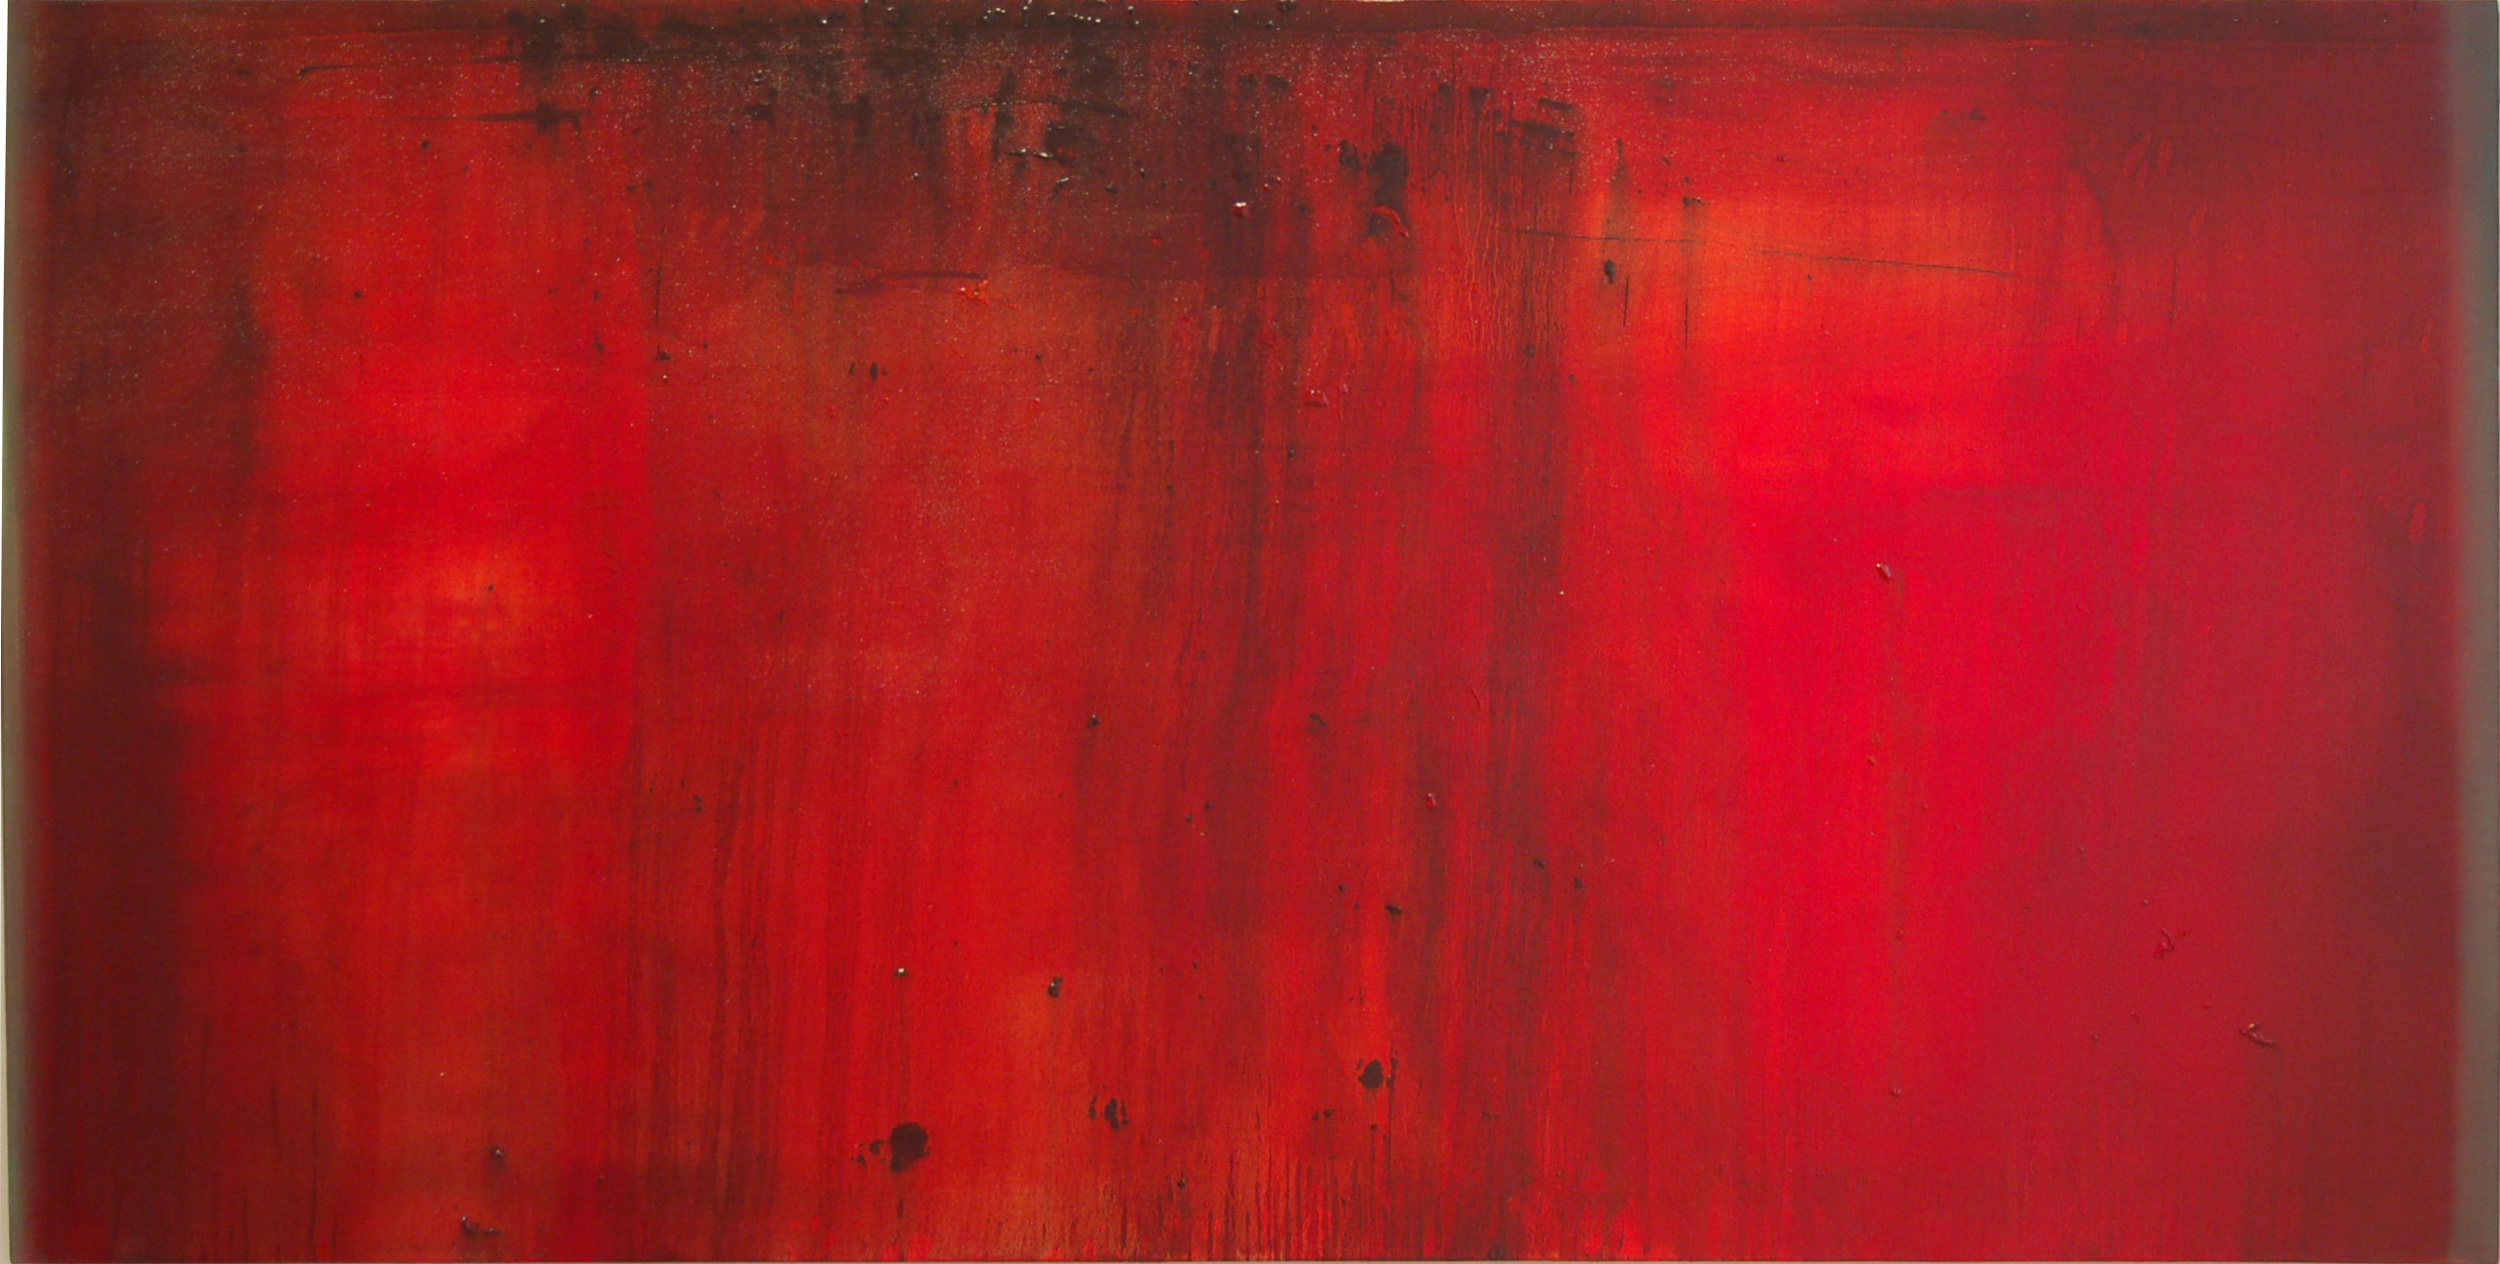 CW-017, Politics of Colour #5, Oil on Canvas, 6' x 3',SOLD